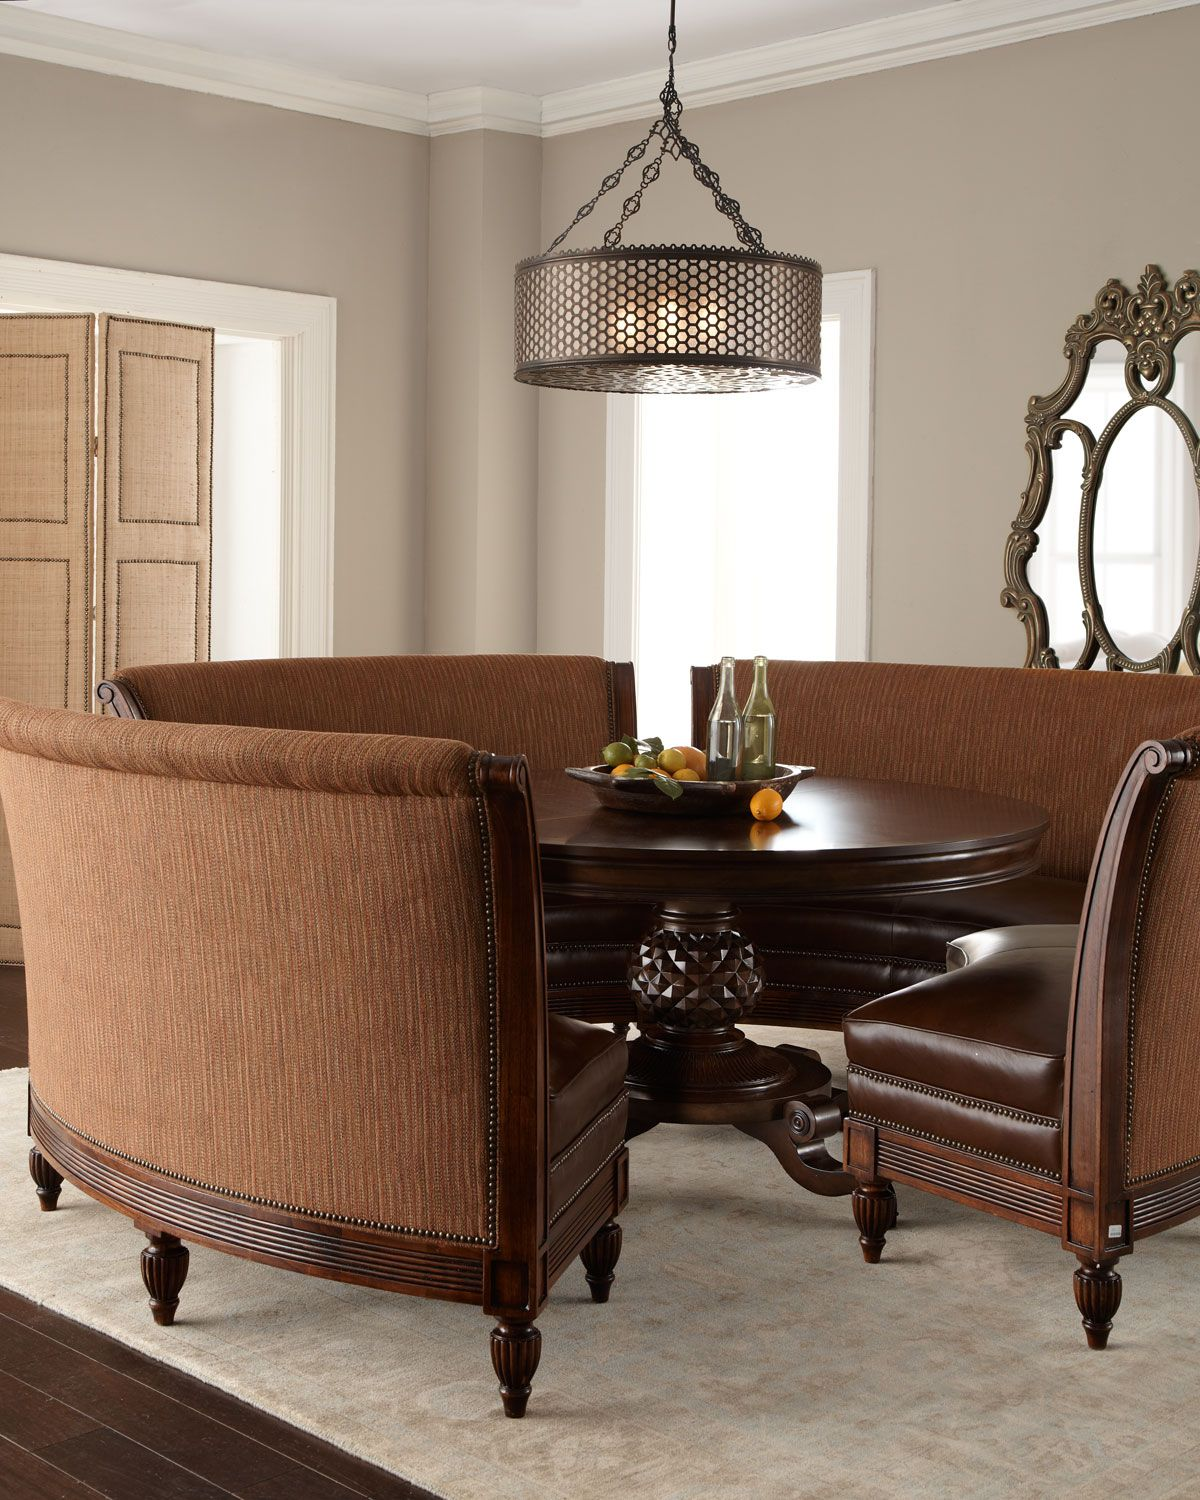 Massoud marie dining table hudson banquette for Dining room banquette